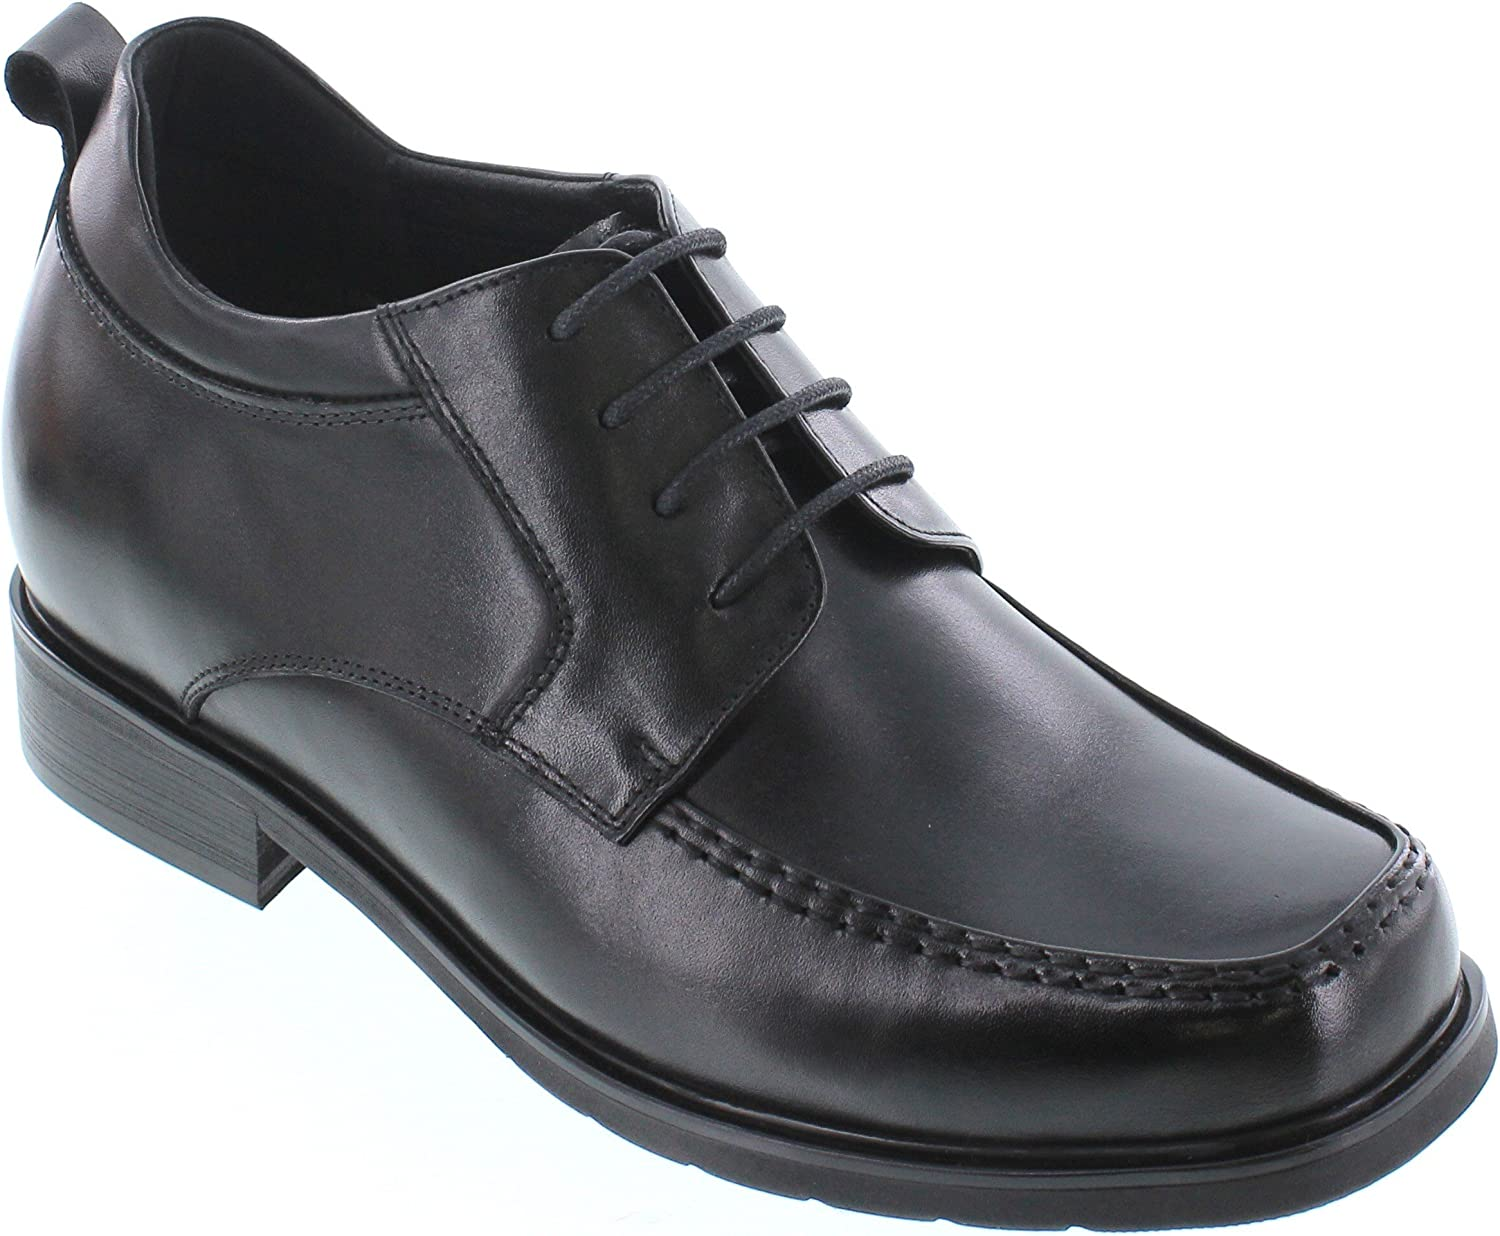 CALTO Men's Invisible Height Increasing Elevator Shoes - Black Premium Leather Lace-up Square-Toe Formal Oxfords - T52714